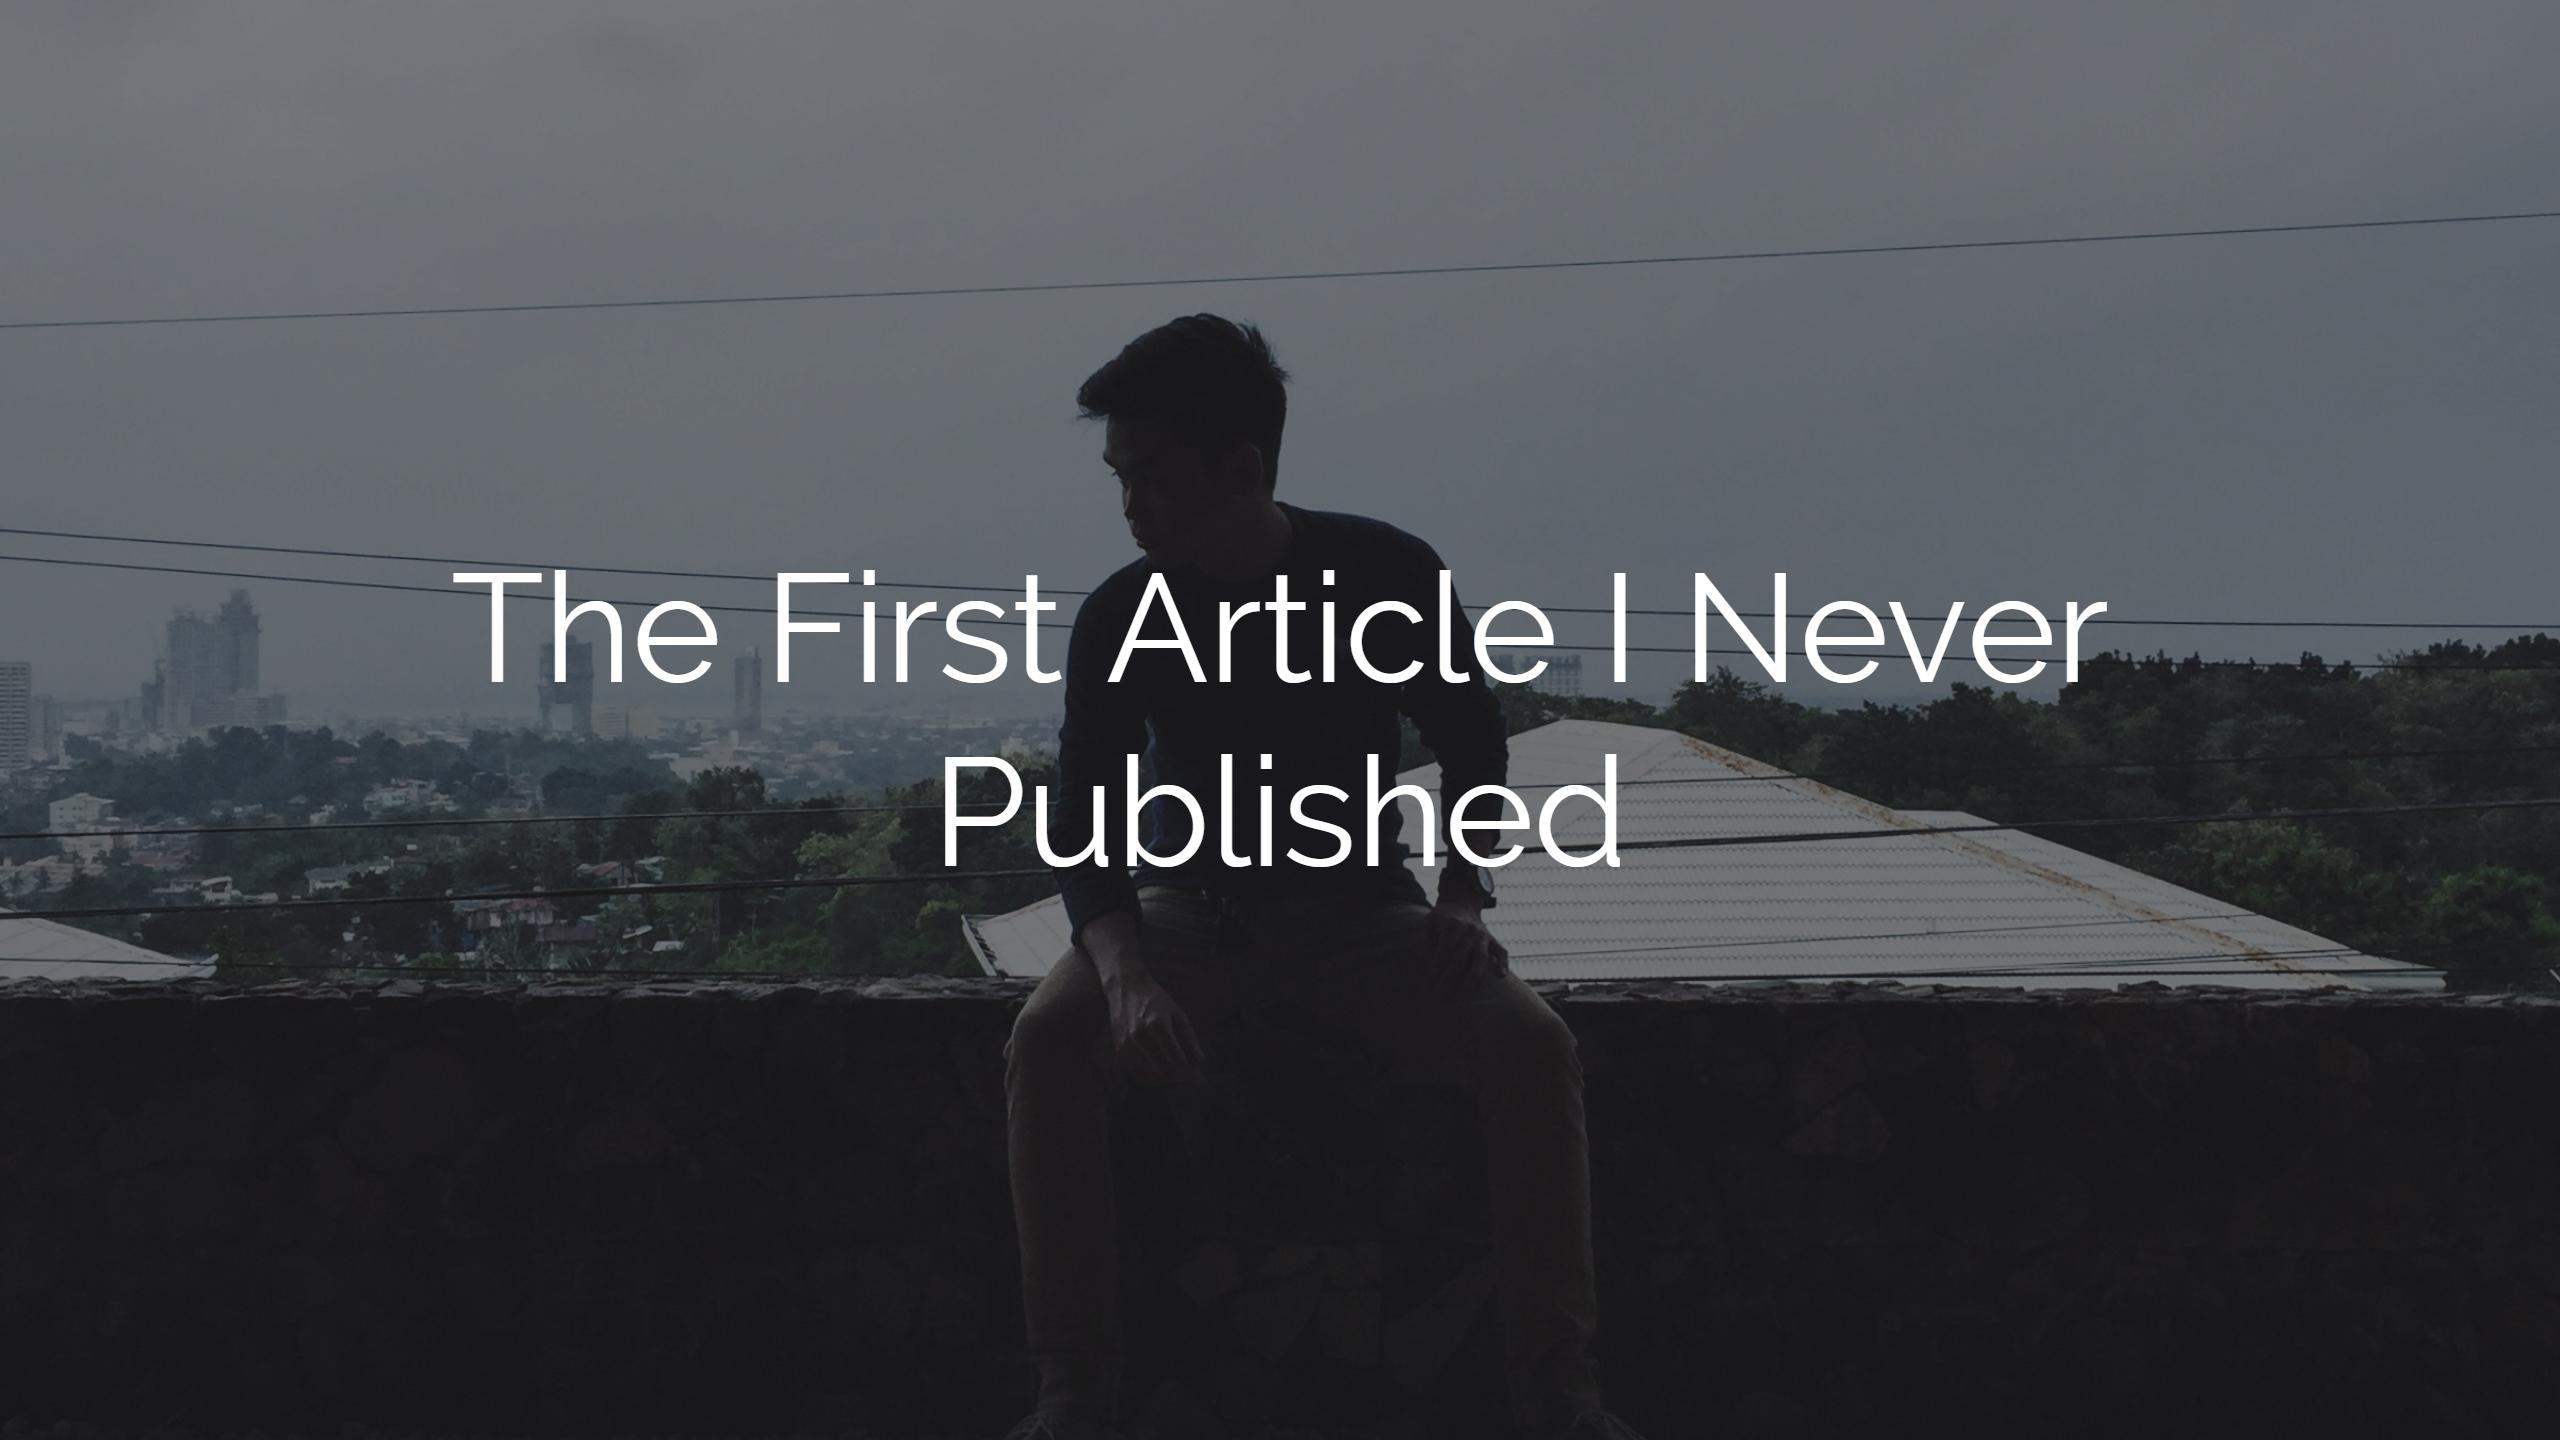 The First Article I Never Published